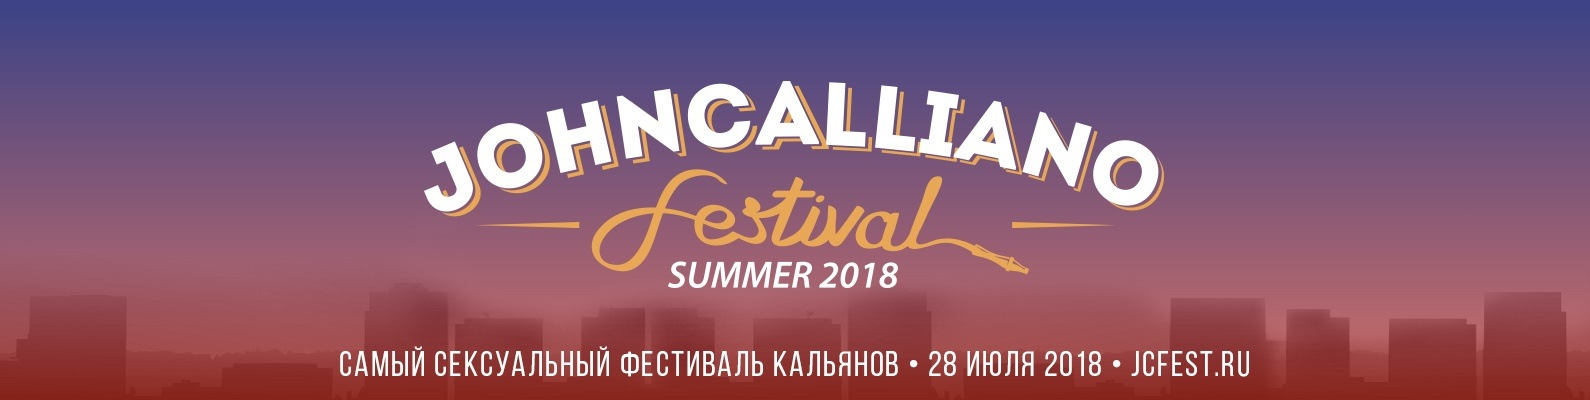 JohnCalliano Festival — Summer 2018